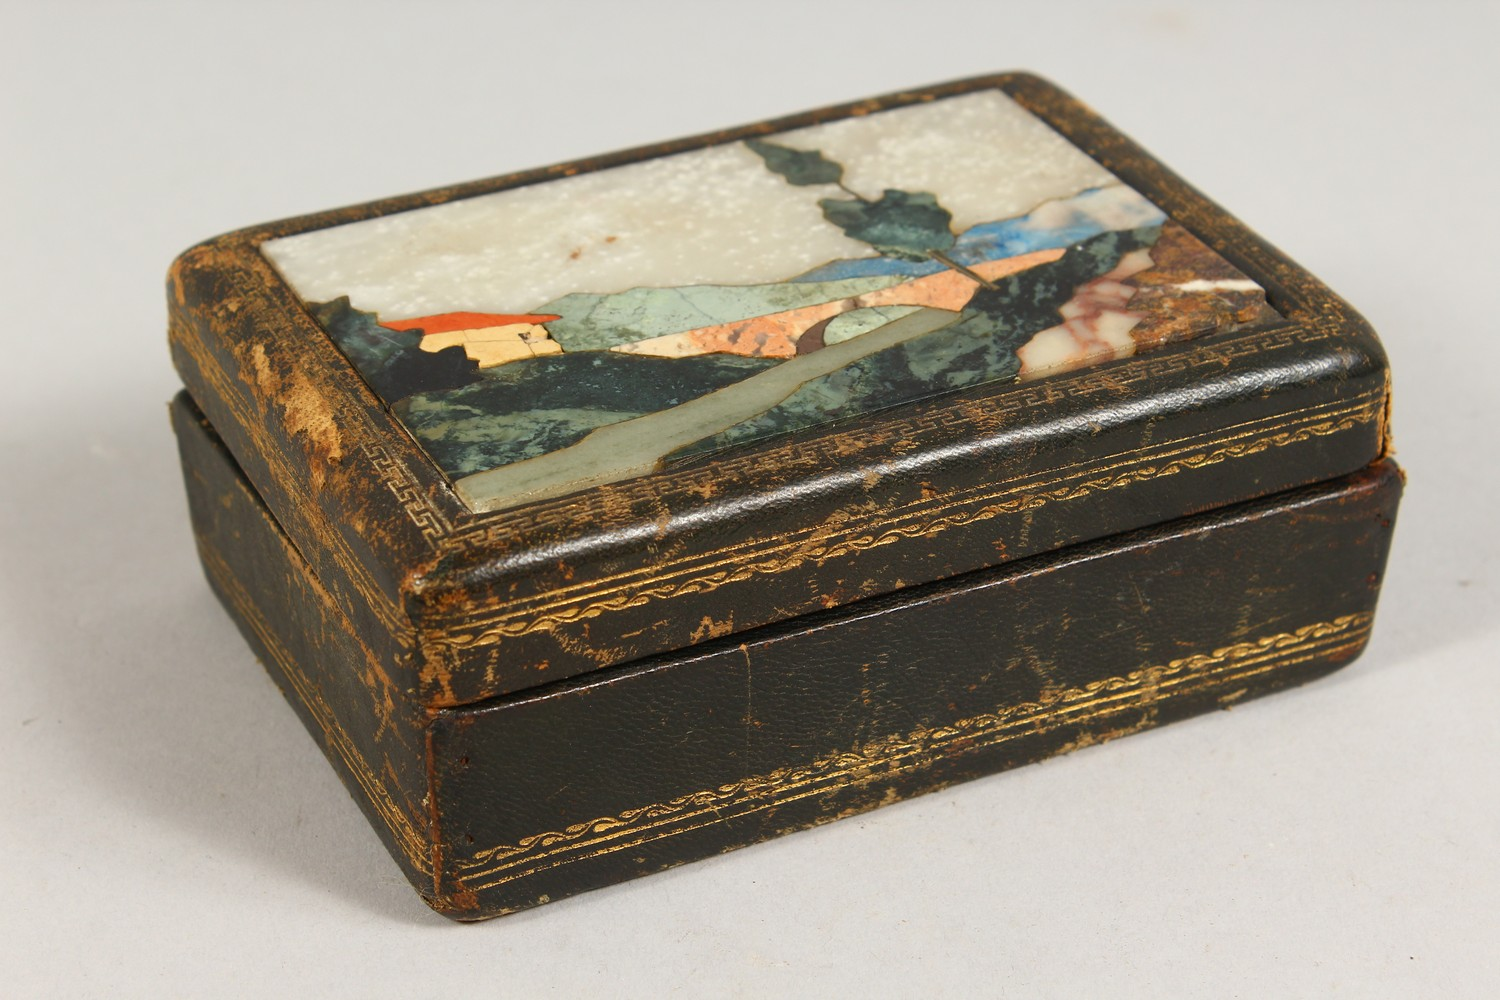 Lot 1429 - A PIETRA DURA AND LEATHER BOX, 20TH CENTURY, the hinged cover inlaid with various hardstones to form